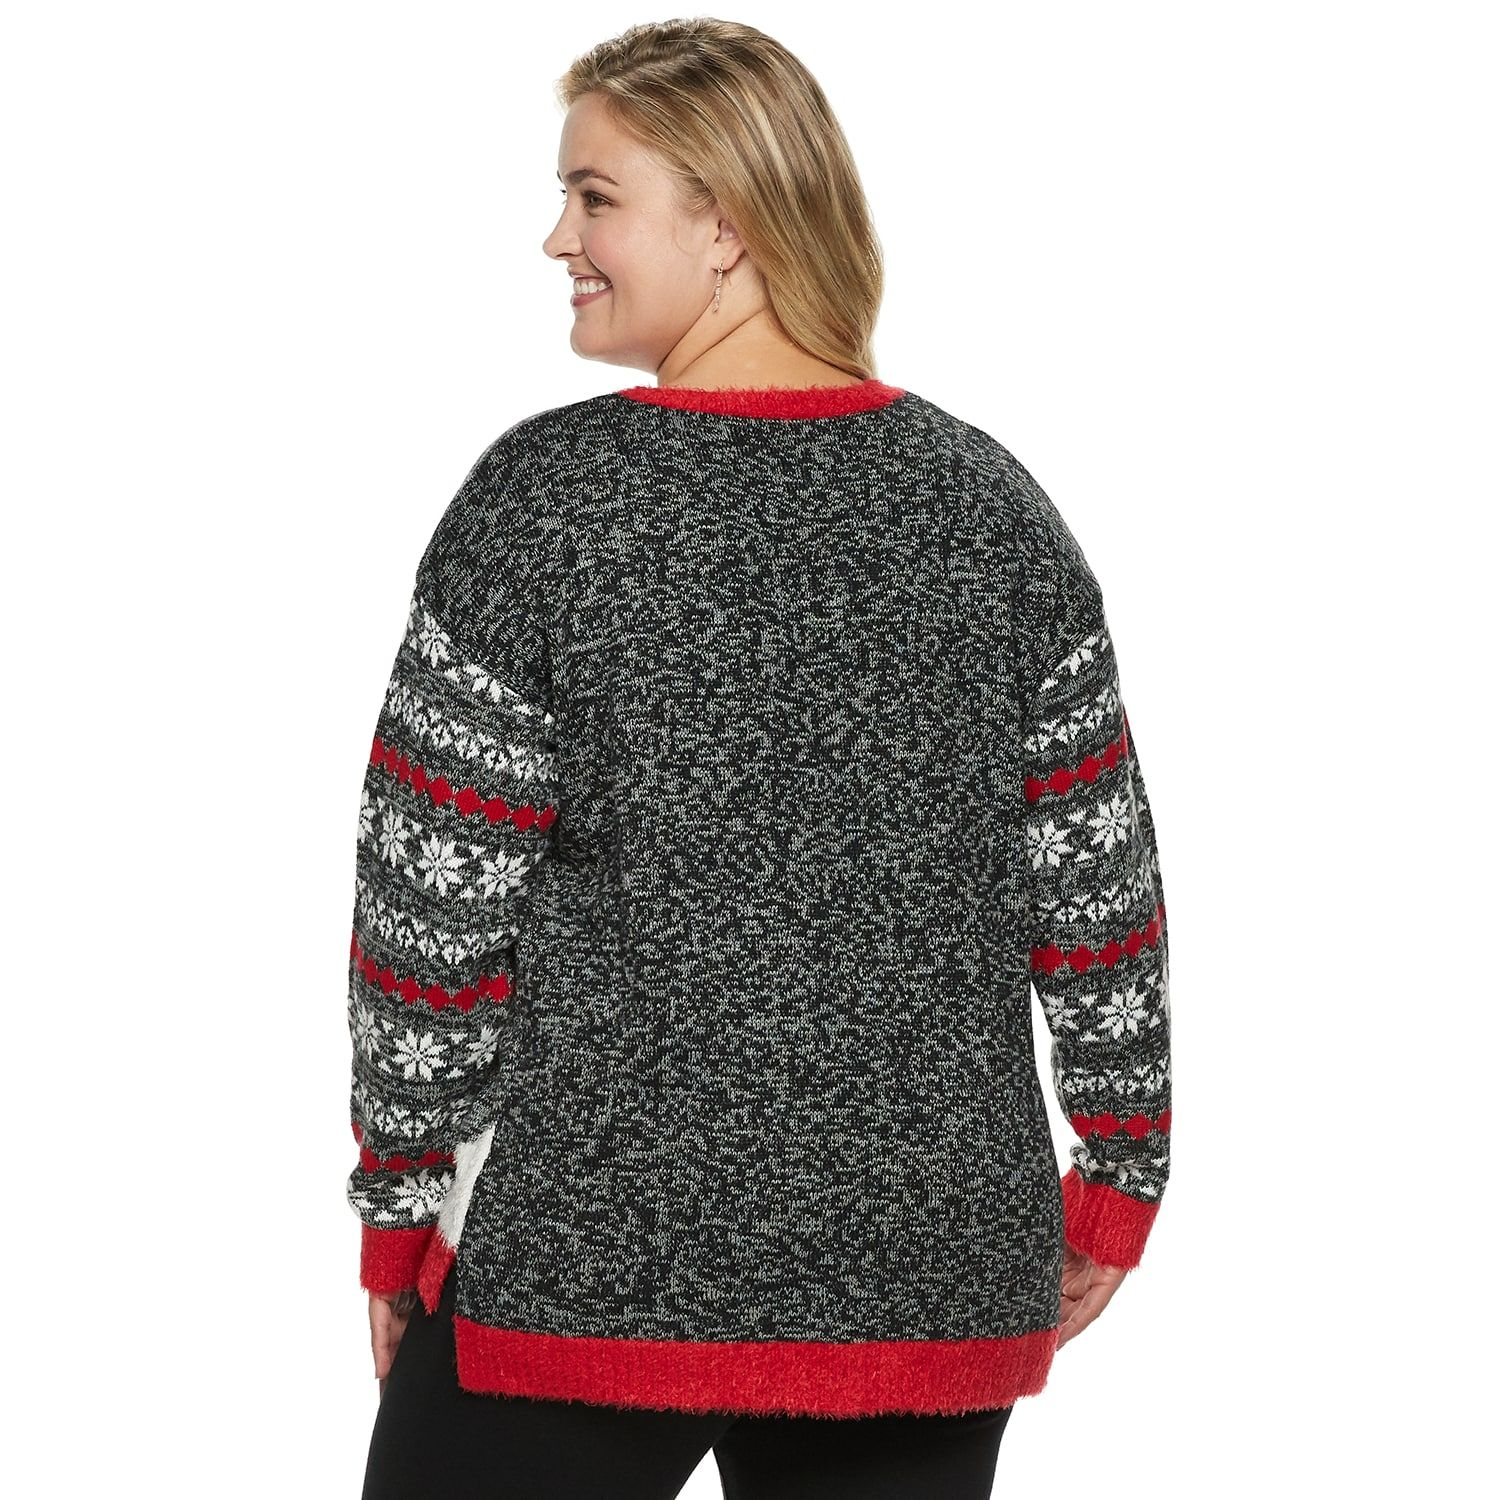 2f0196ac417 Plus Size Women s Holiday Crewneck Sweater  Women